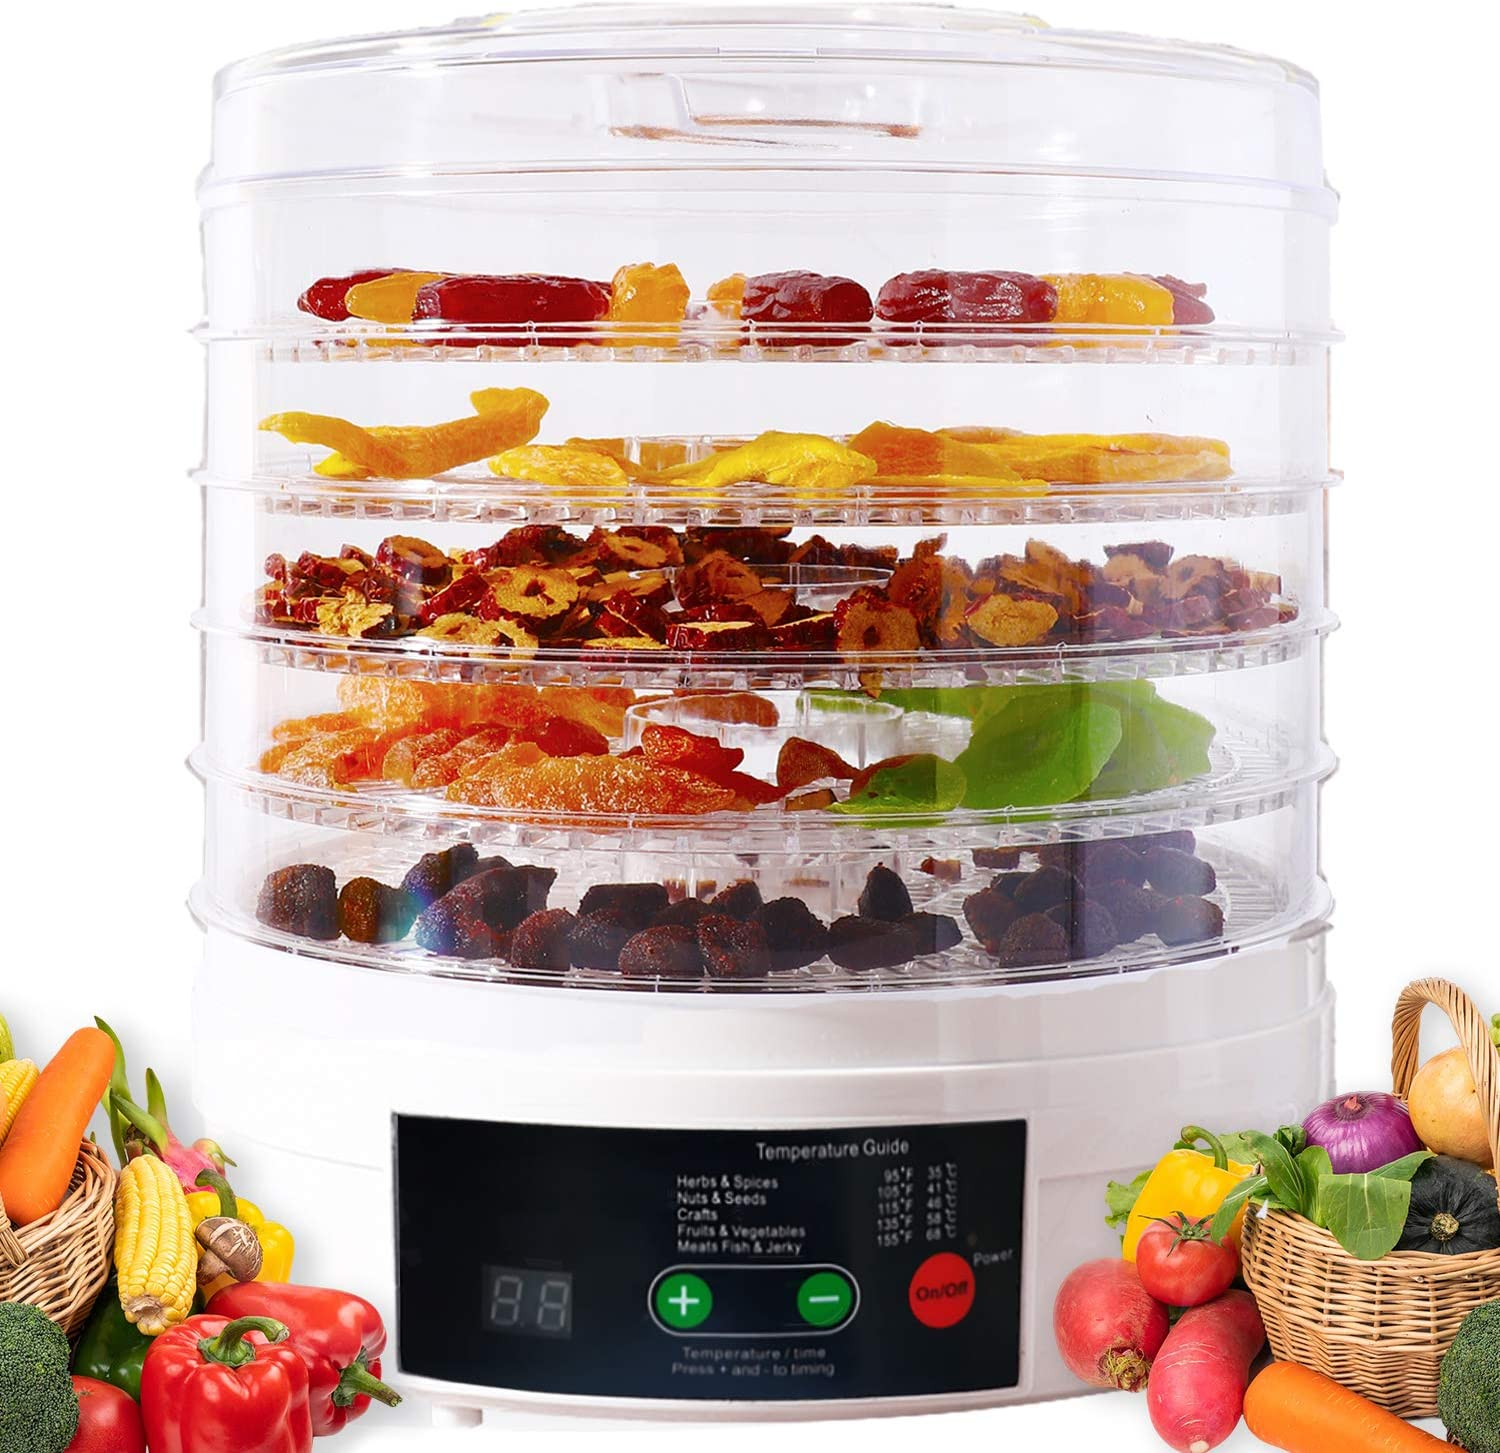 Vchiming Food Dehydrator Machine Electric Dryer for Beef Jerky, Fruit, Meat, Dog Treats, BPA Free 5 Trays Dehydrator with Timer and Temperature Control, Operation Manual and Recipes Included